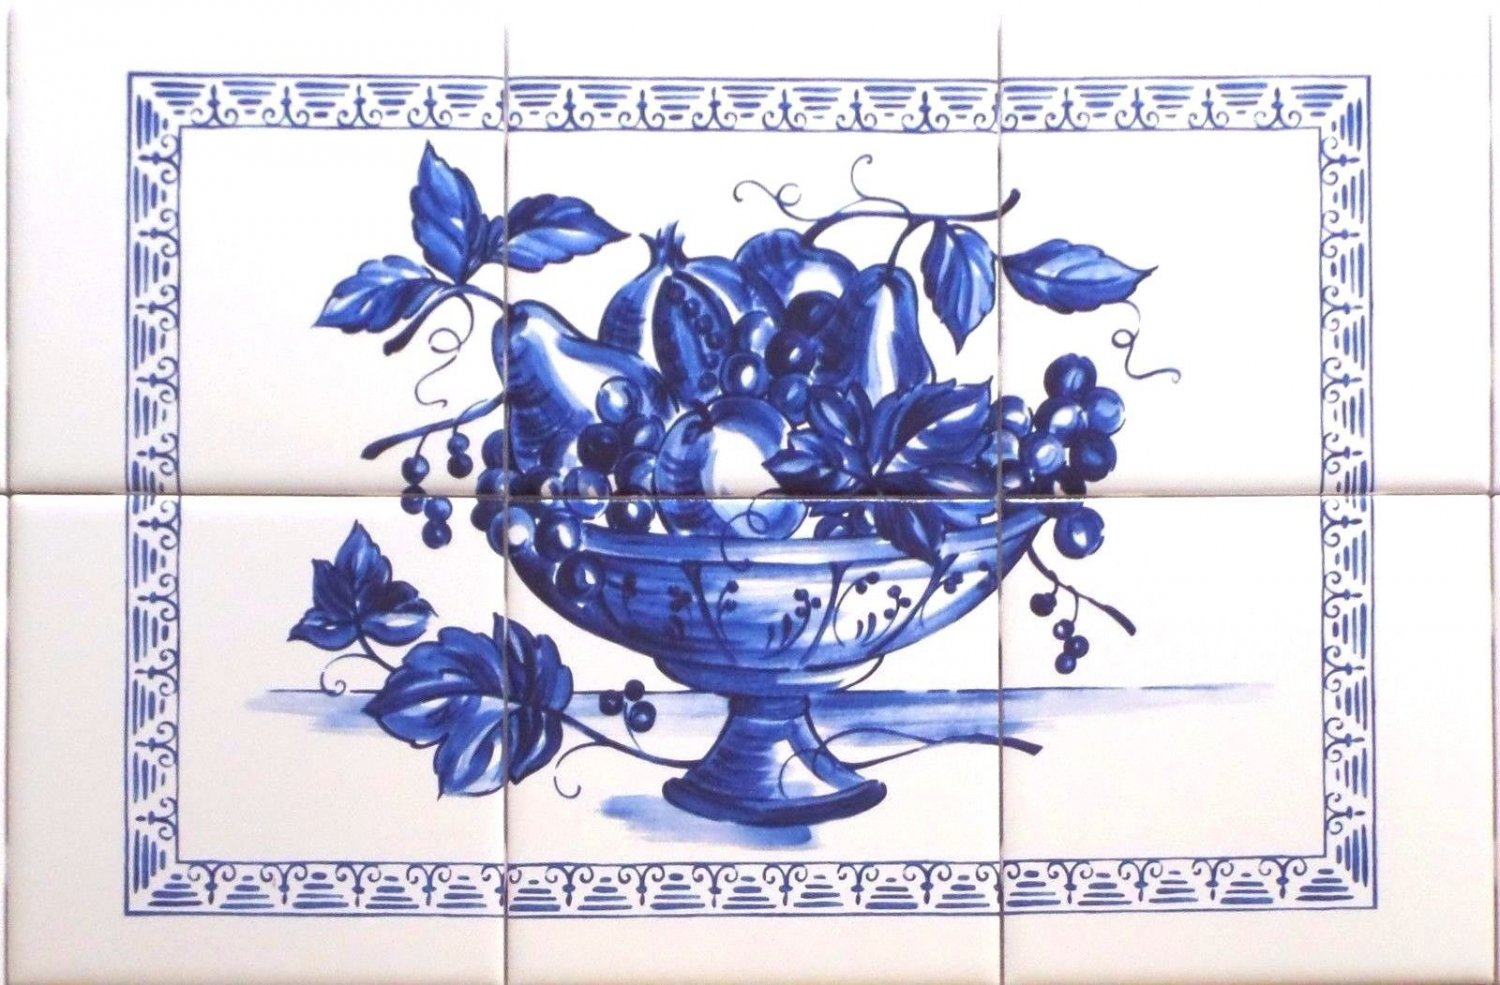 "Blue Fruit Ceramic Tile Mural 18"" x 12"" Kiln Fired Back Splash Delft Decor"